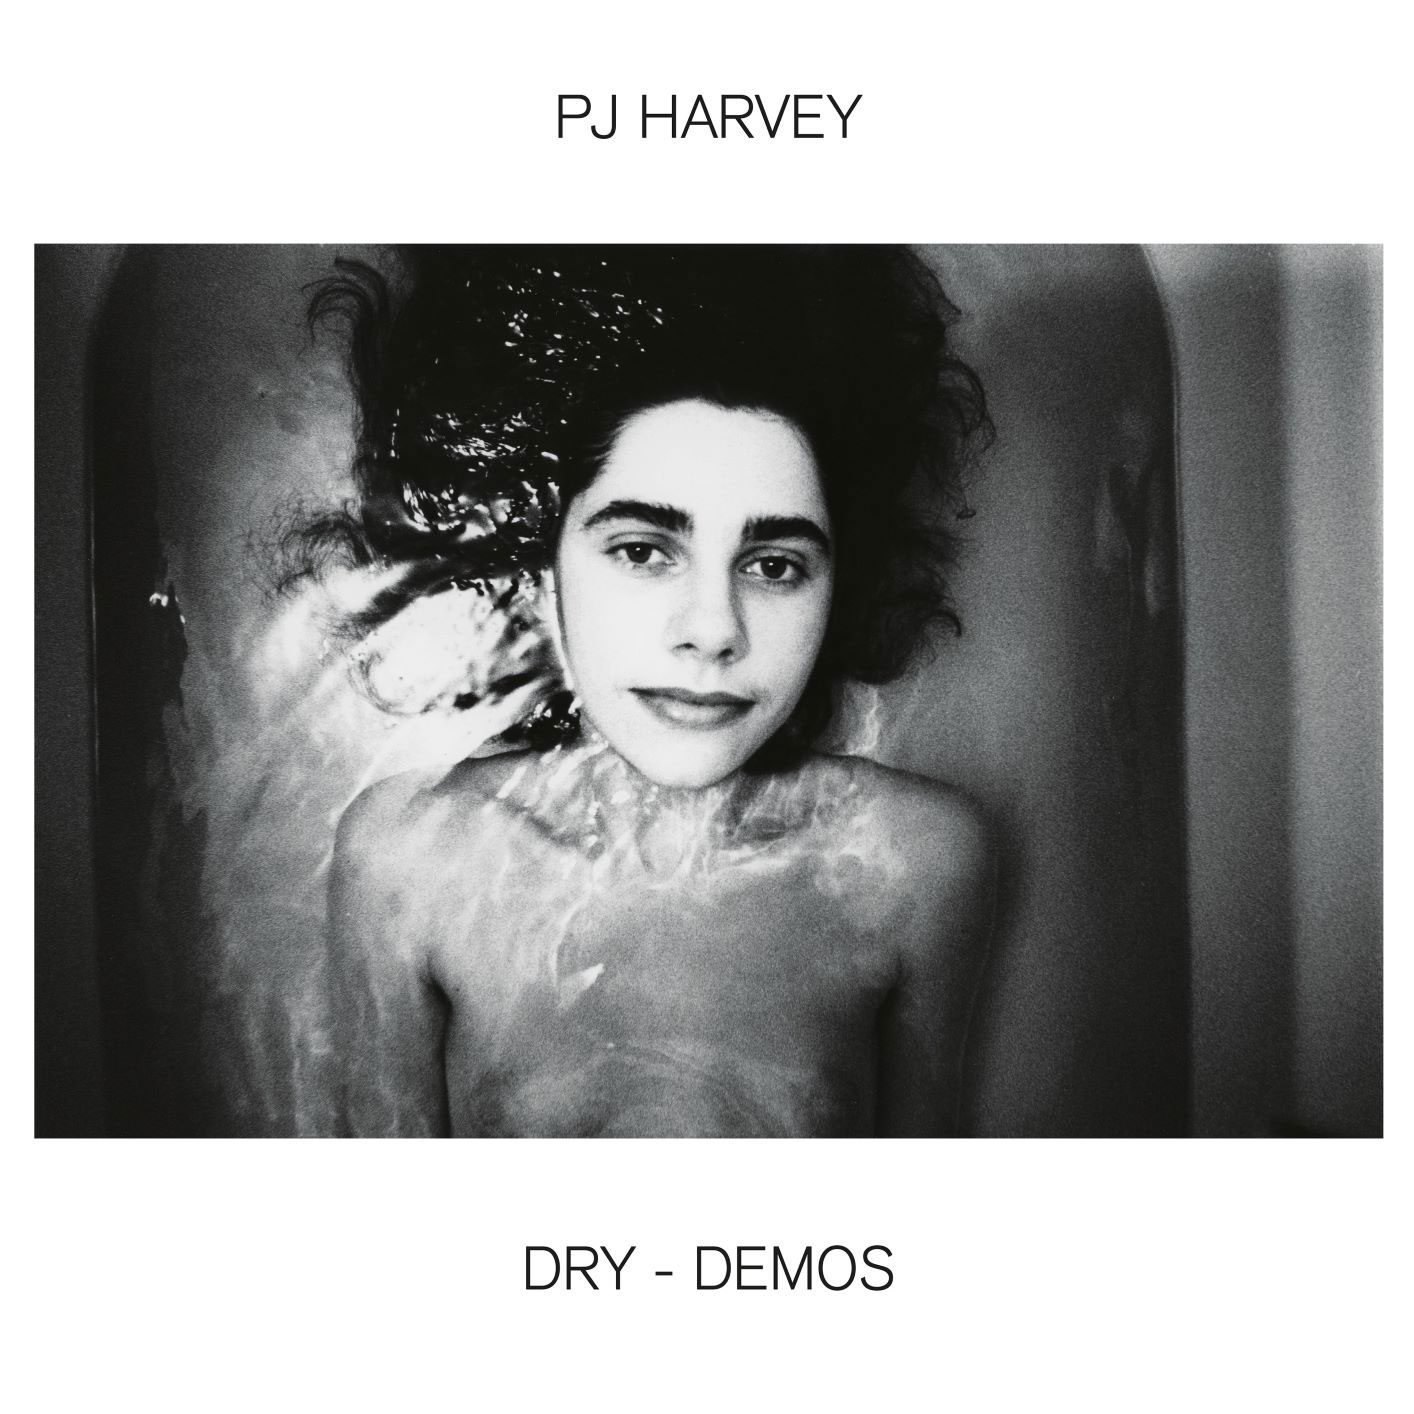 PJ Harvey Dry - Demos 180g LP